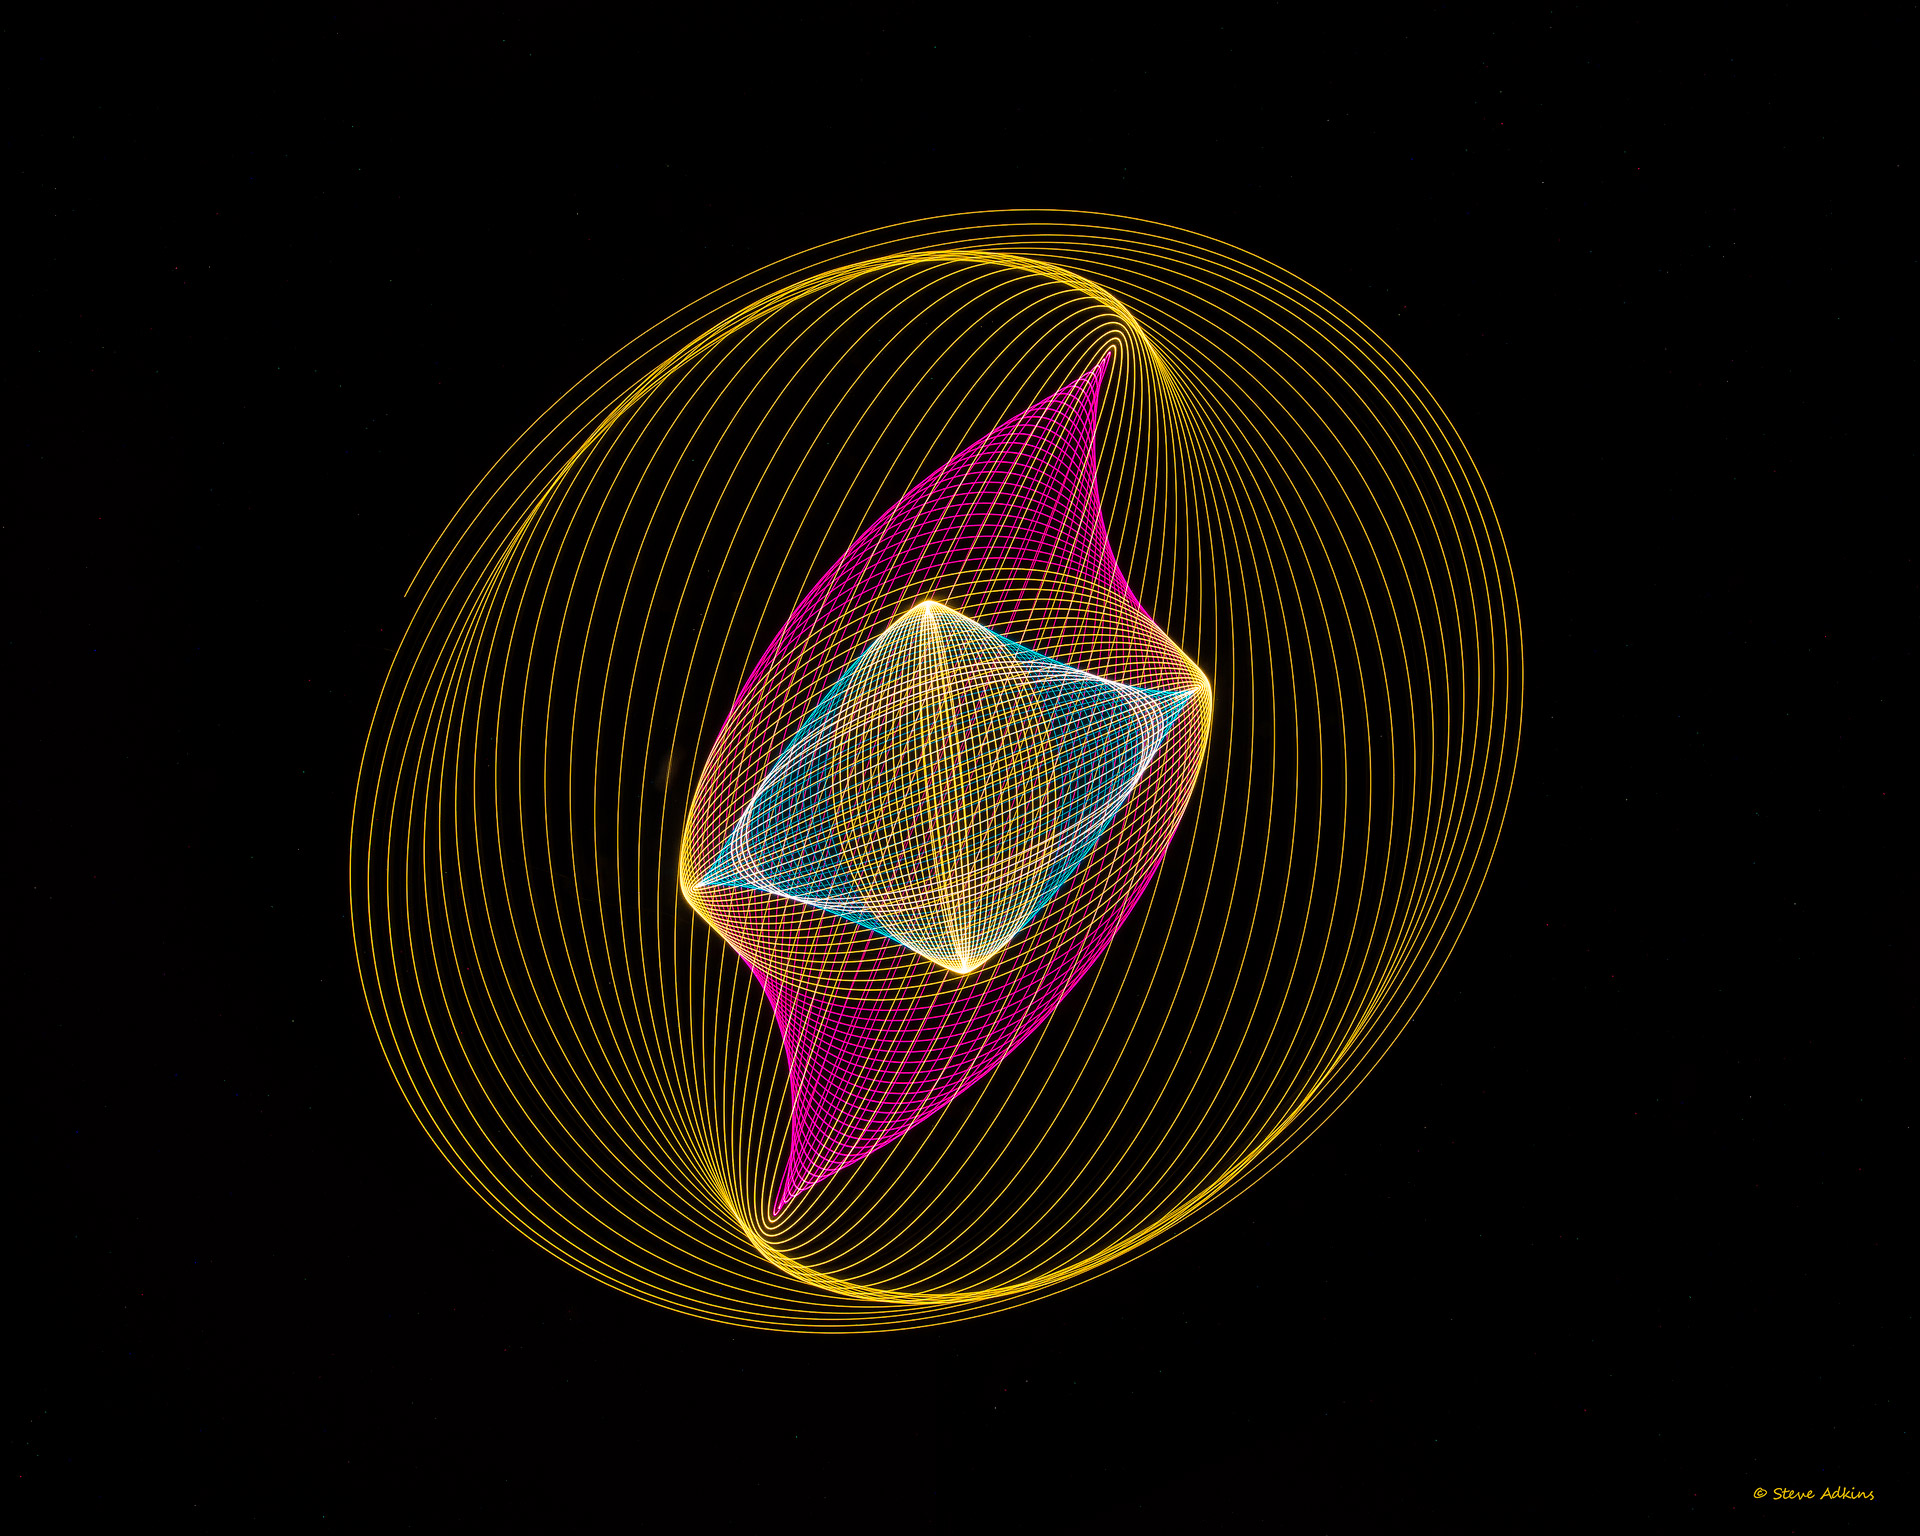 pysiogram,light weaving,light,weave,